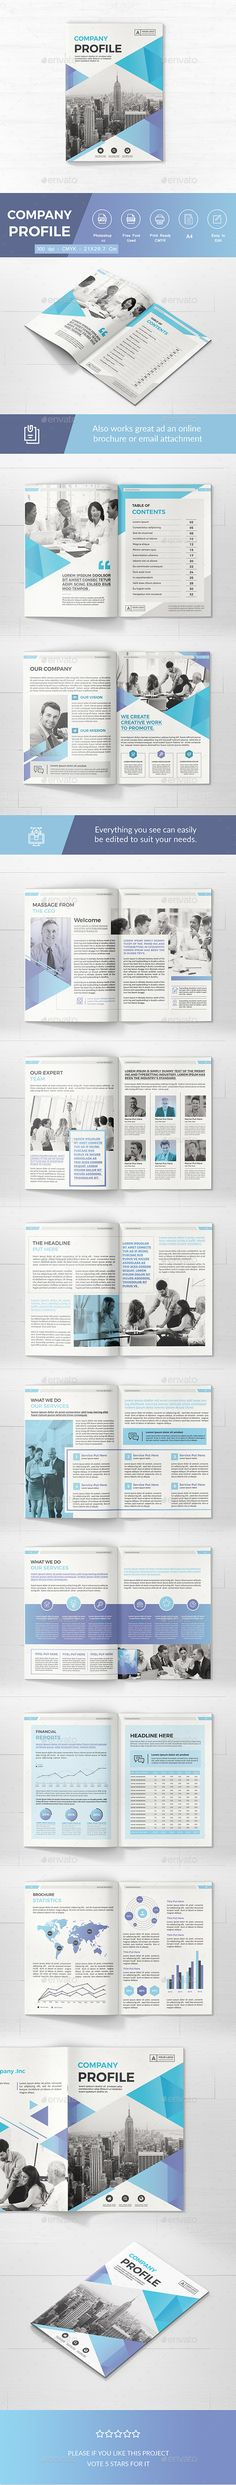 Company Profile Company profile, Corporate brochure and Brochures - company profile sample download